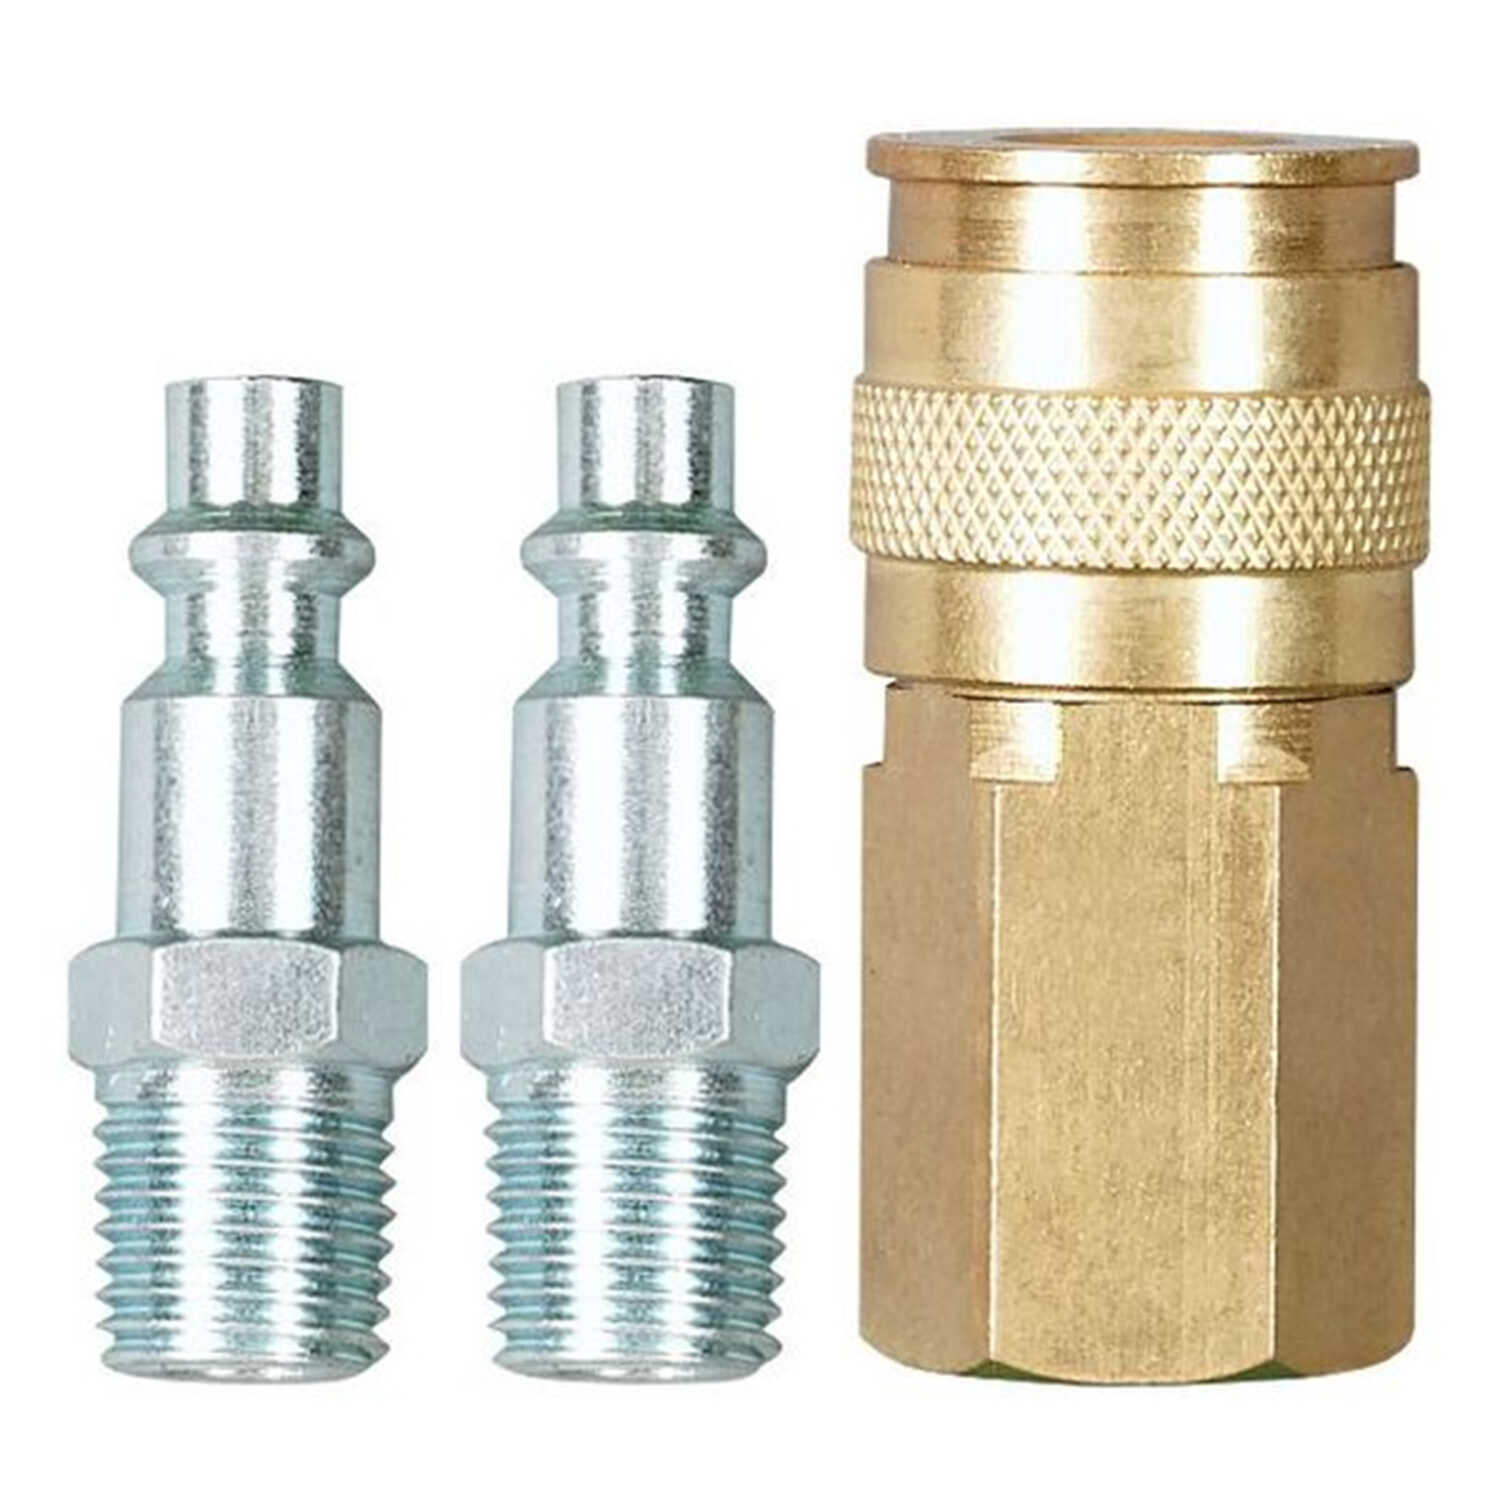 Craftsman  Stainless Steel  Universal Coupler Kit  1/4 in. Male  Gold/Silver  3 pc. 1/4 in.